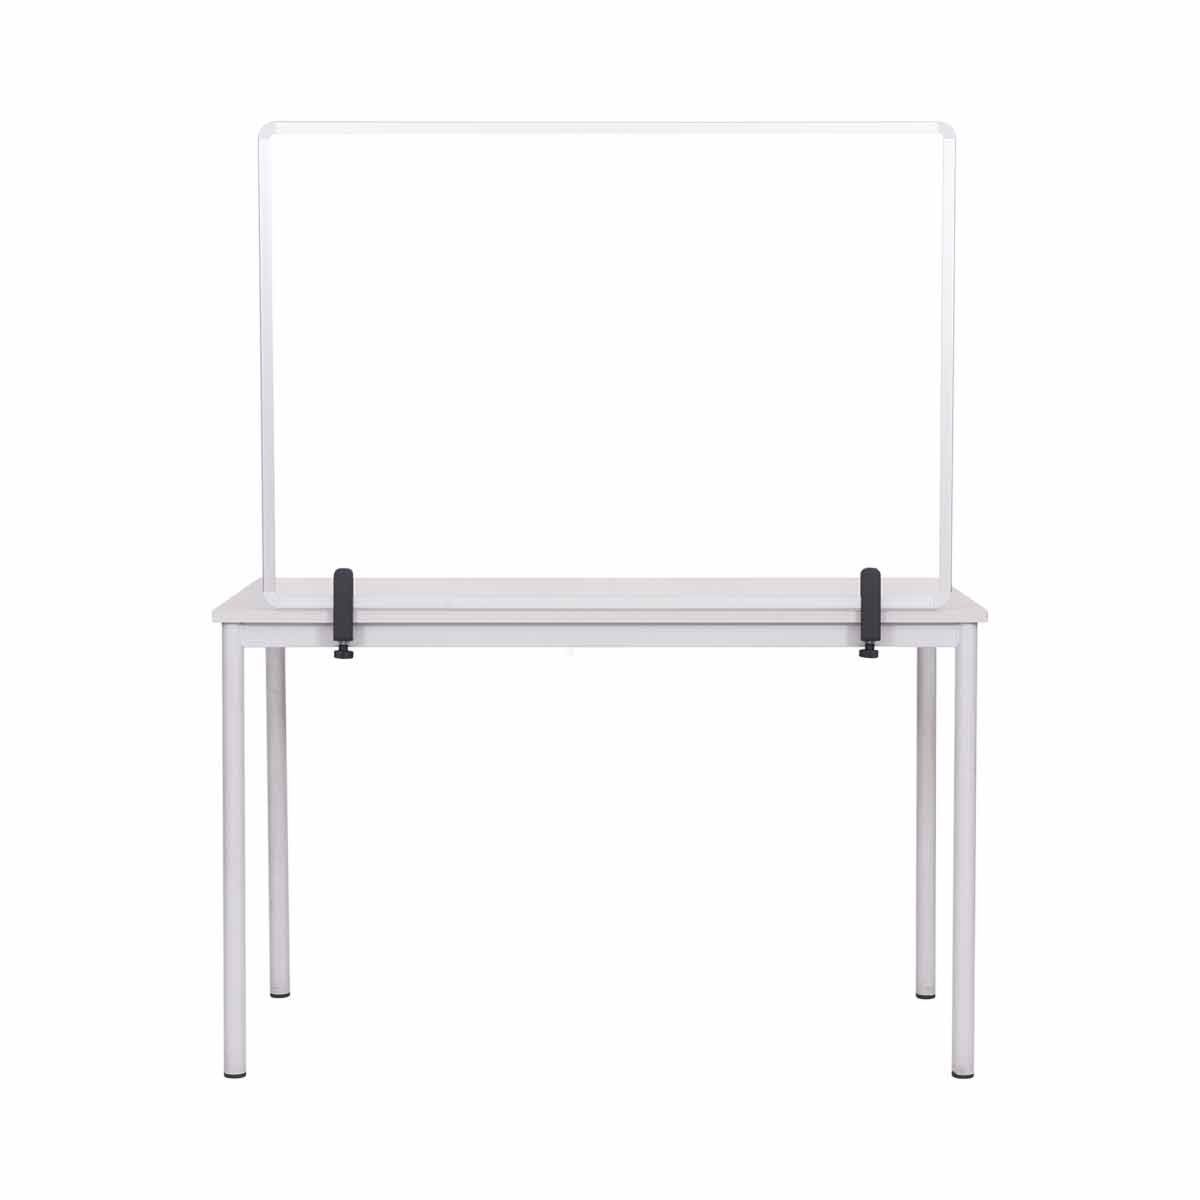 Bi-Office Protector Desktop Glass Board with Aluminium Frame and Clamps 90 x 60 cm